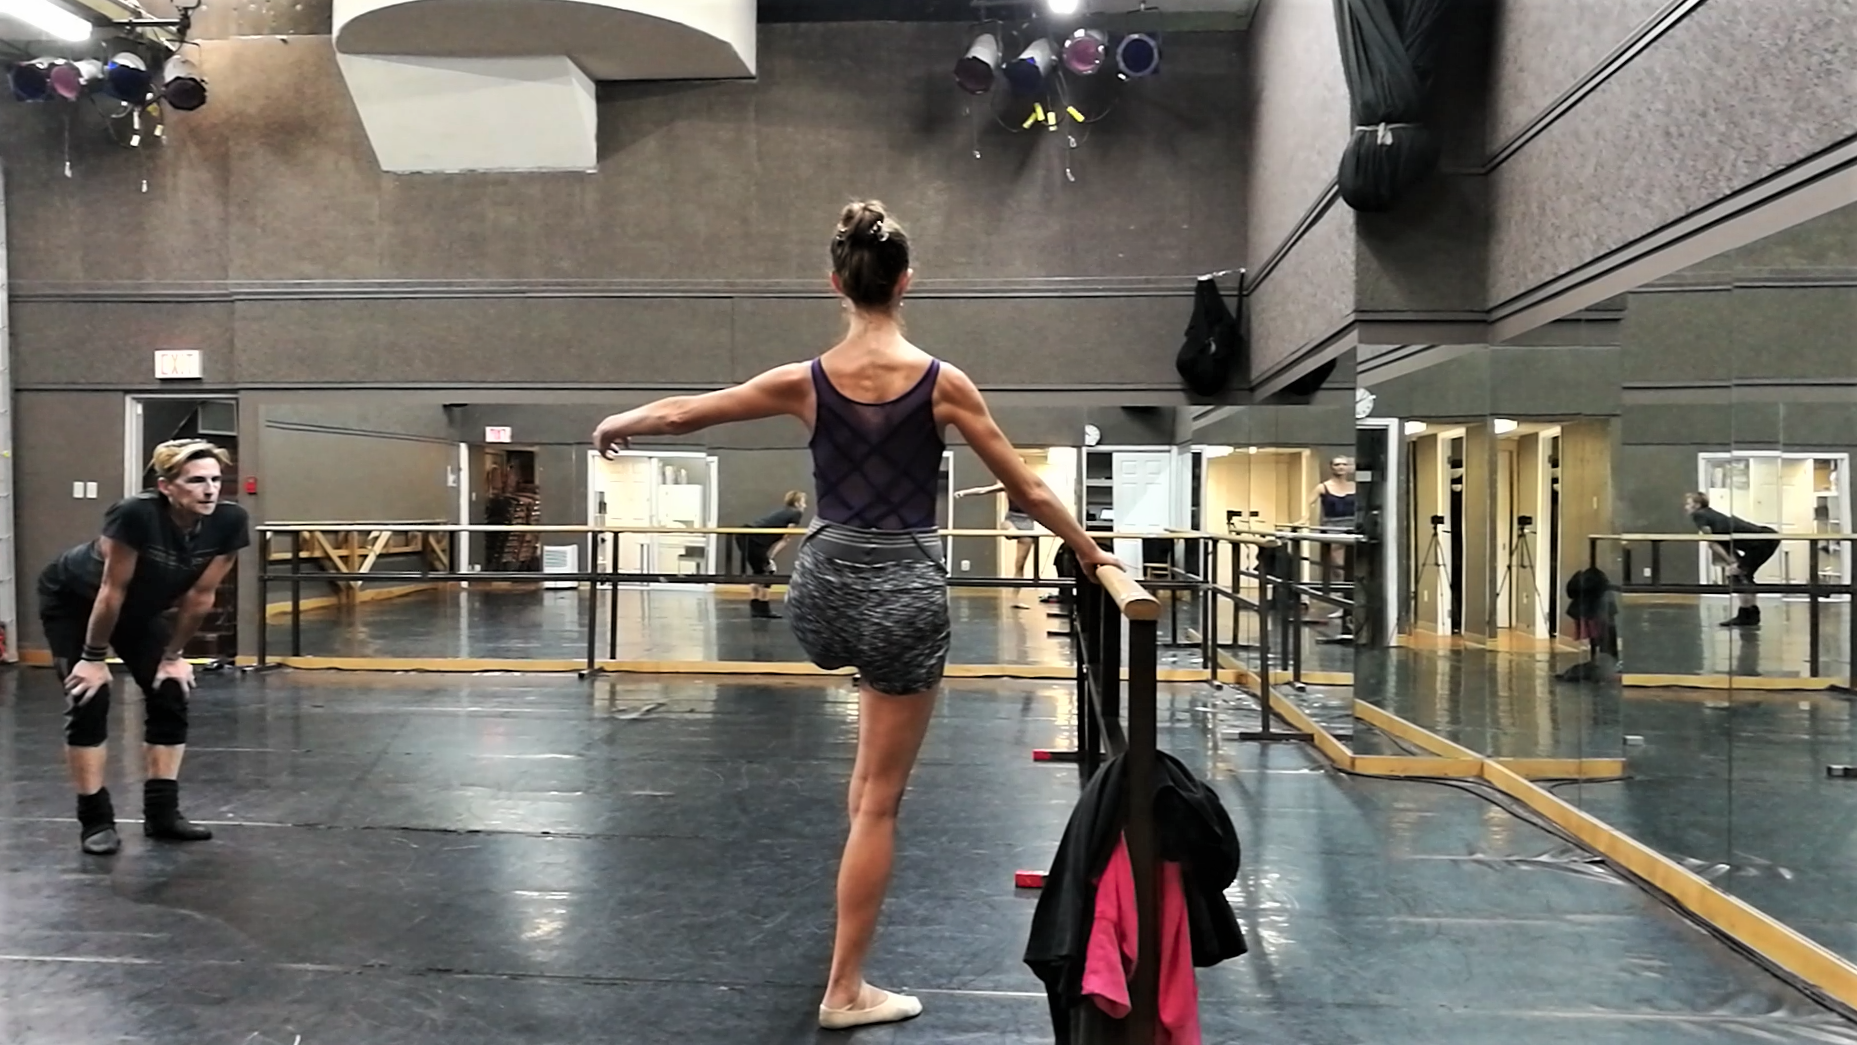 Standing on one leg. Developé on flat. Back activation. Classical 20% exercise!